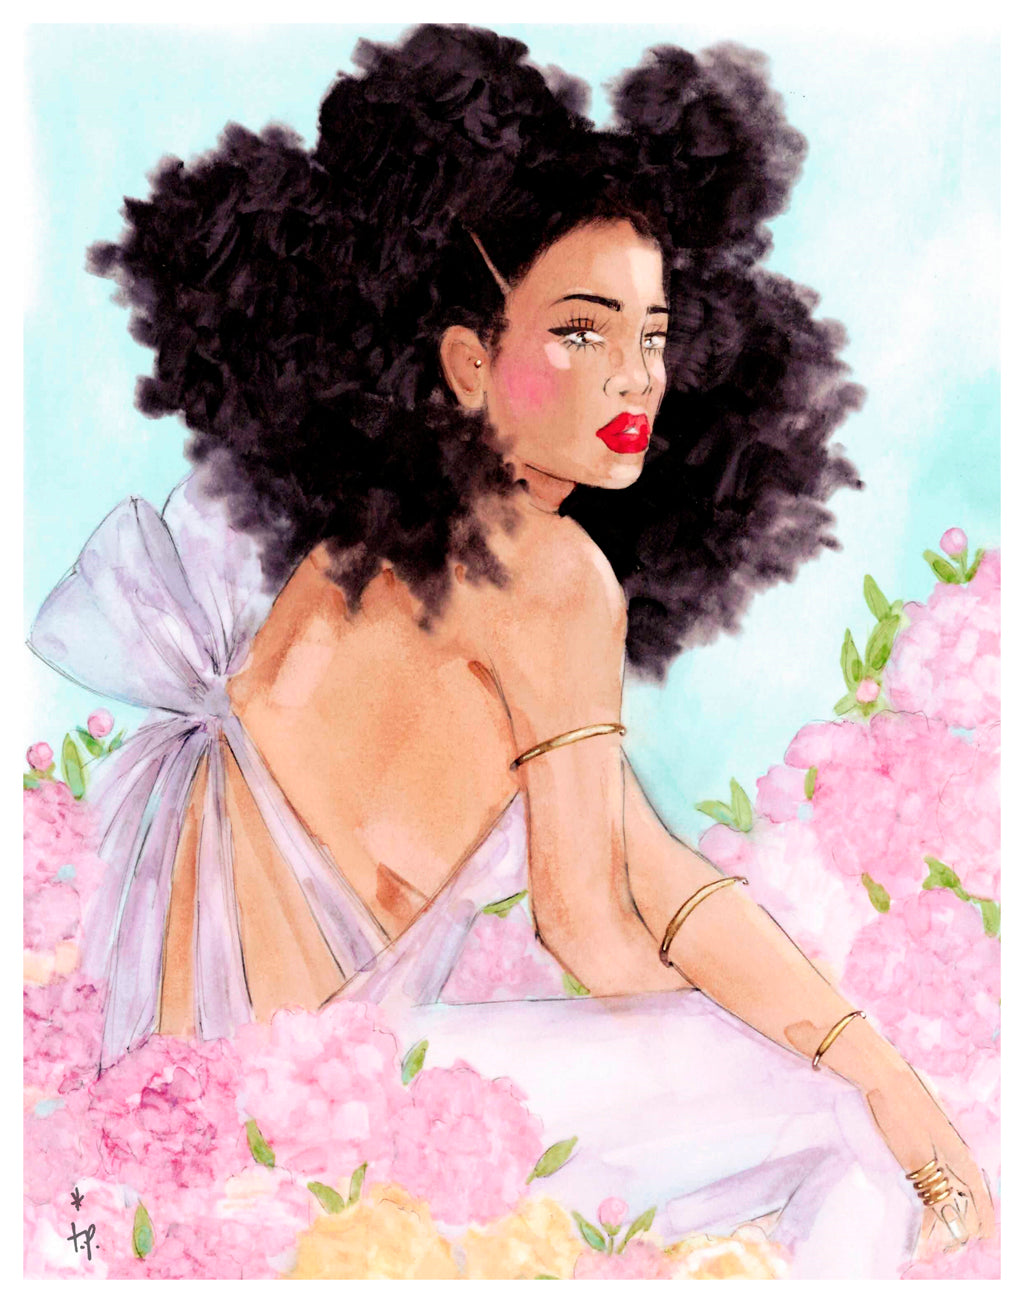 Illustration of a woman with big curly hair sitting in a field of peonies by Tatiana Poblah